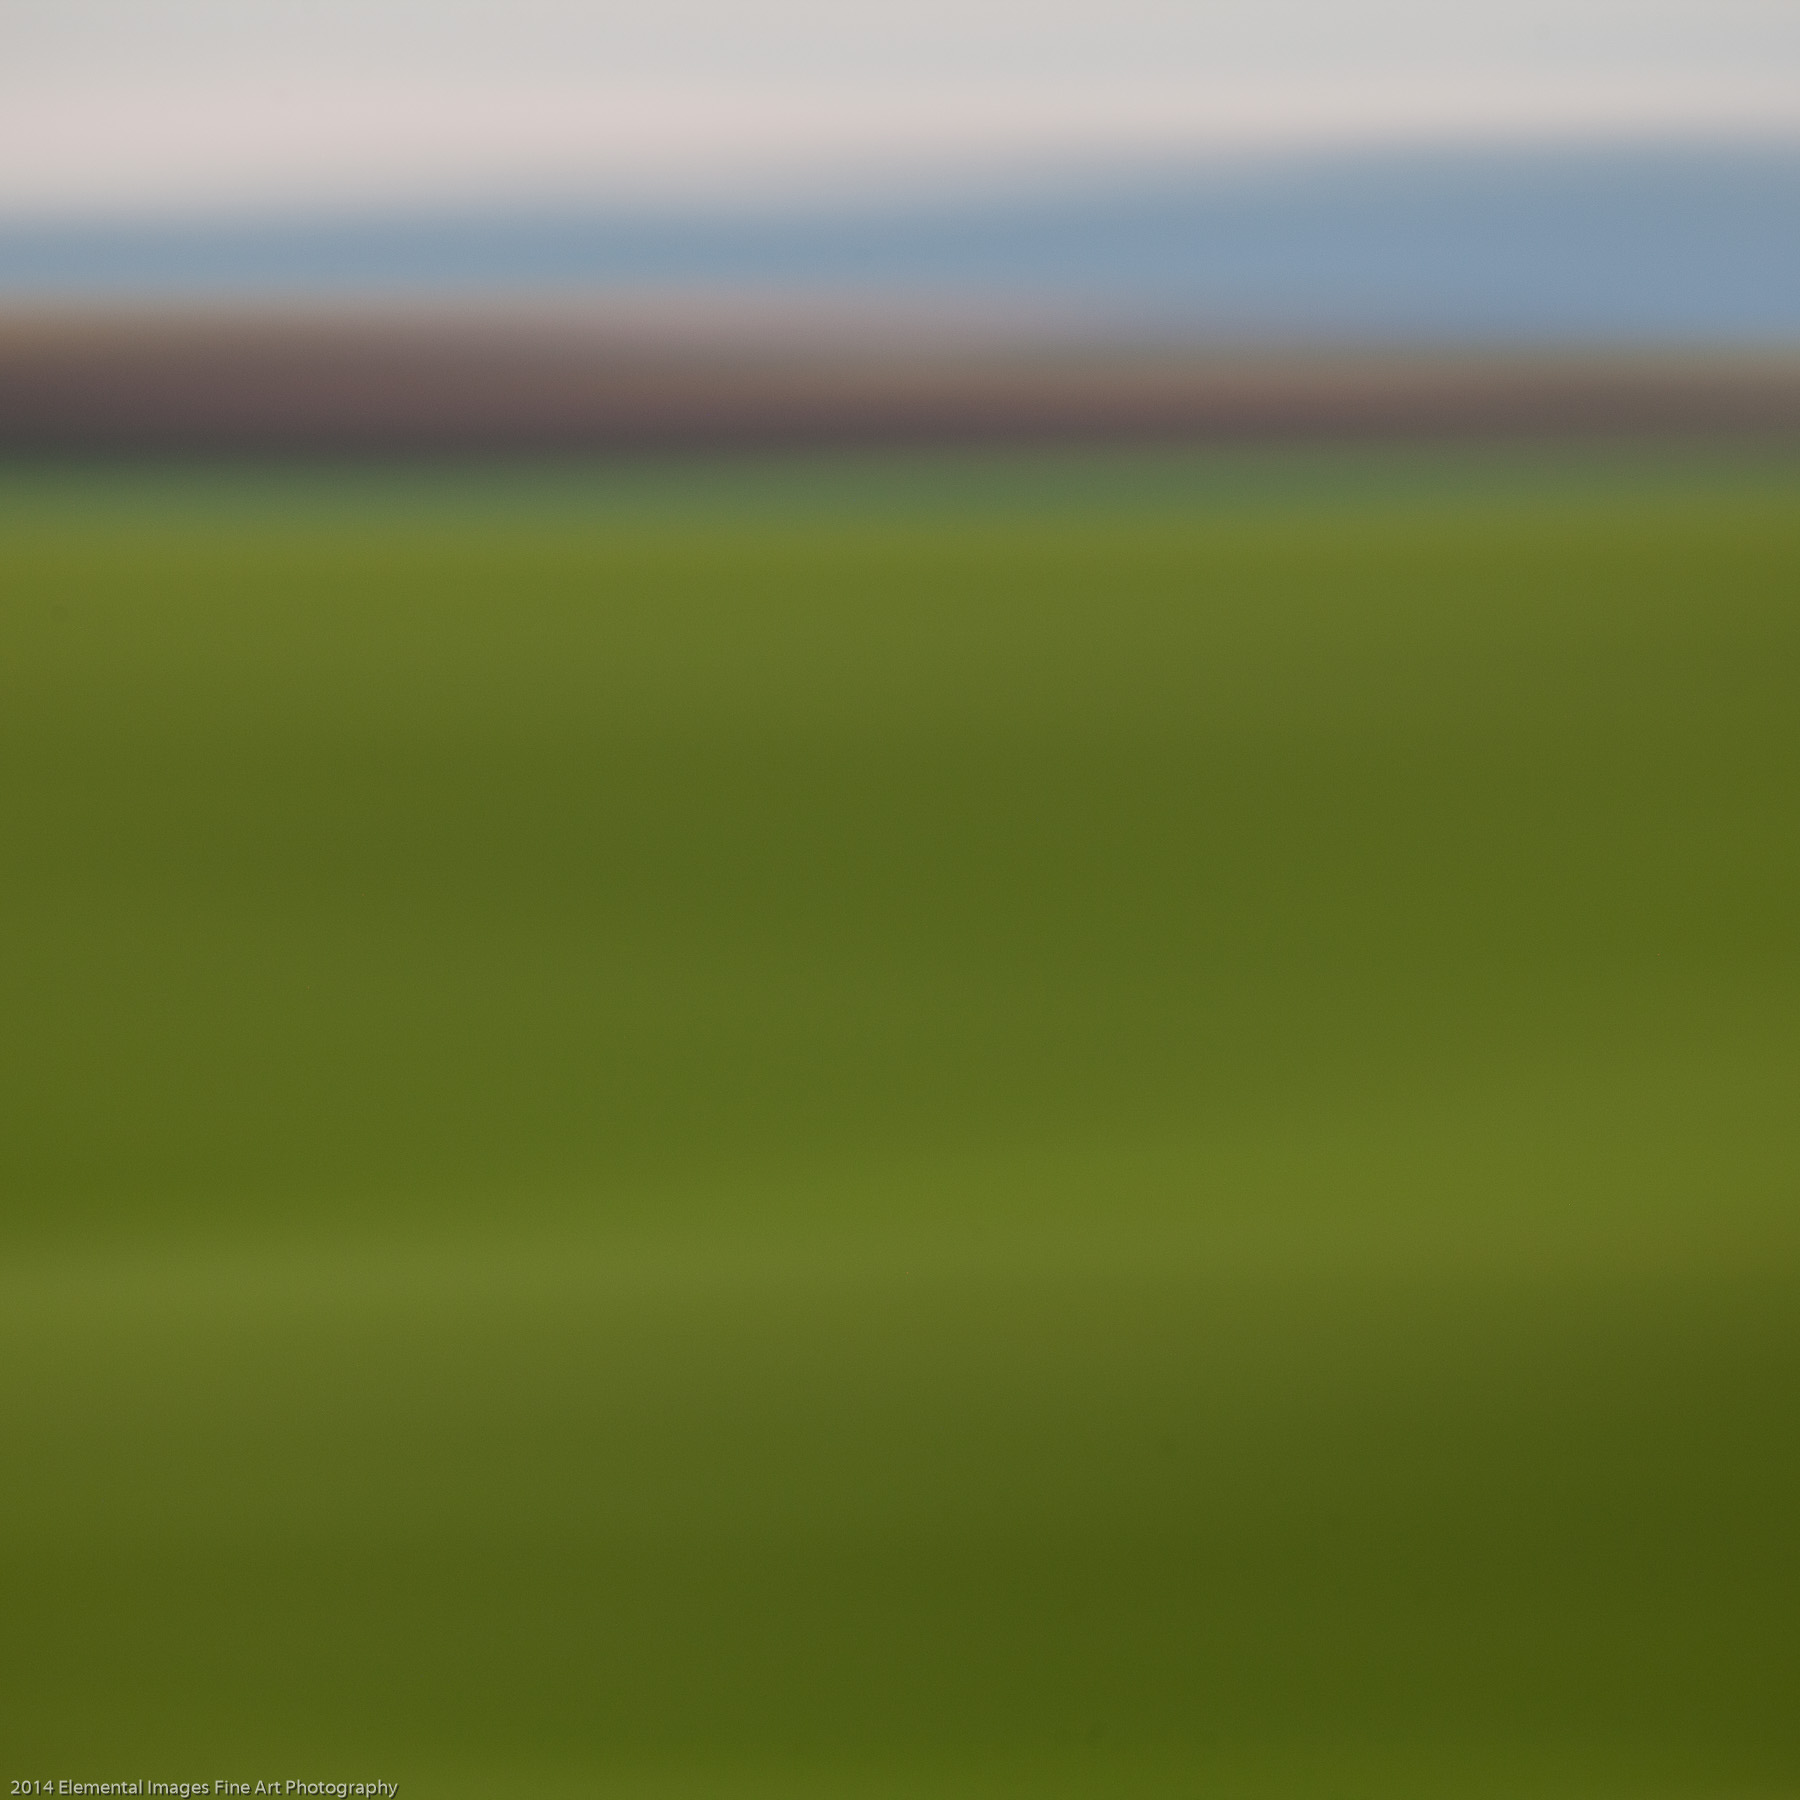 Palouse LXVI | The Palouse | WA | USA - © 2014 Elemental Images Fine Art Photography - All Rights Reserved Worldwide